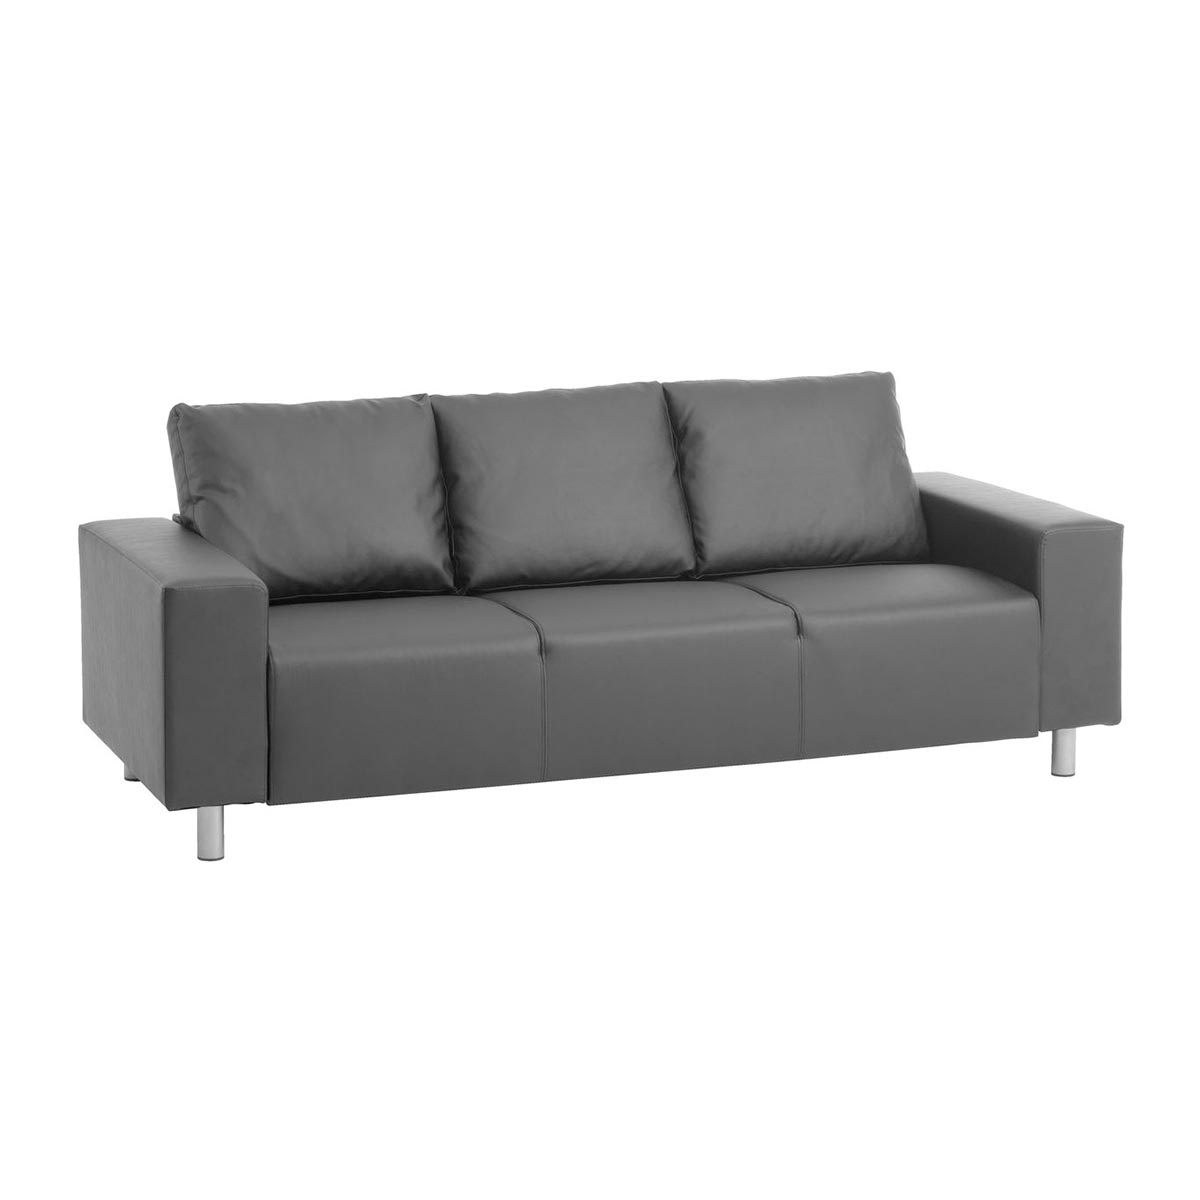 JYSK 3-Seater Galsted Faux Leather Black